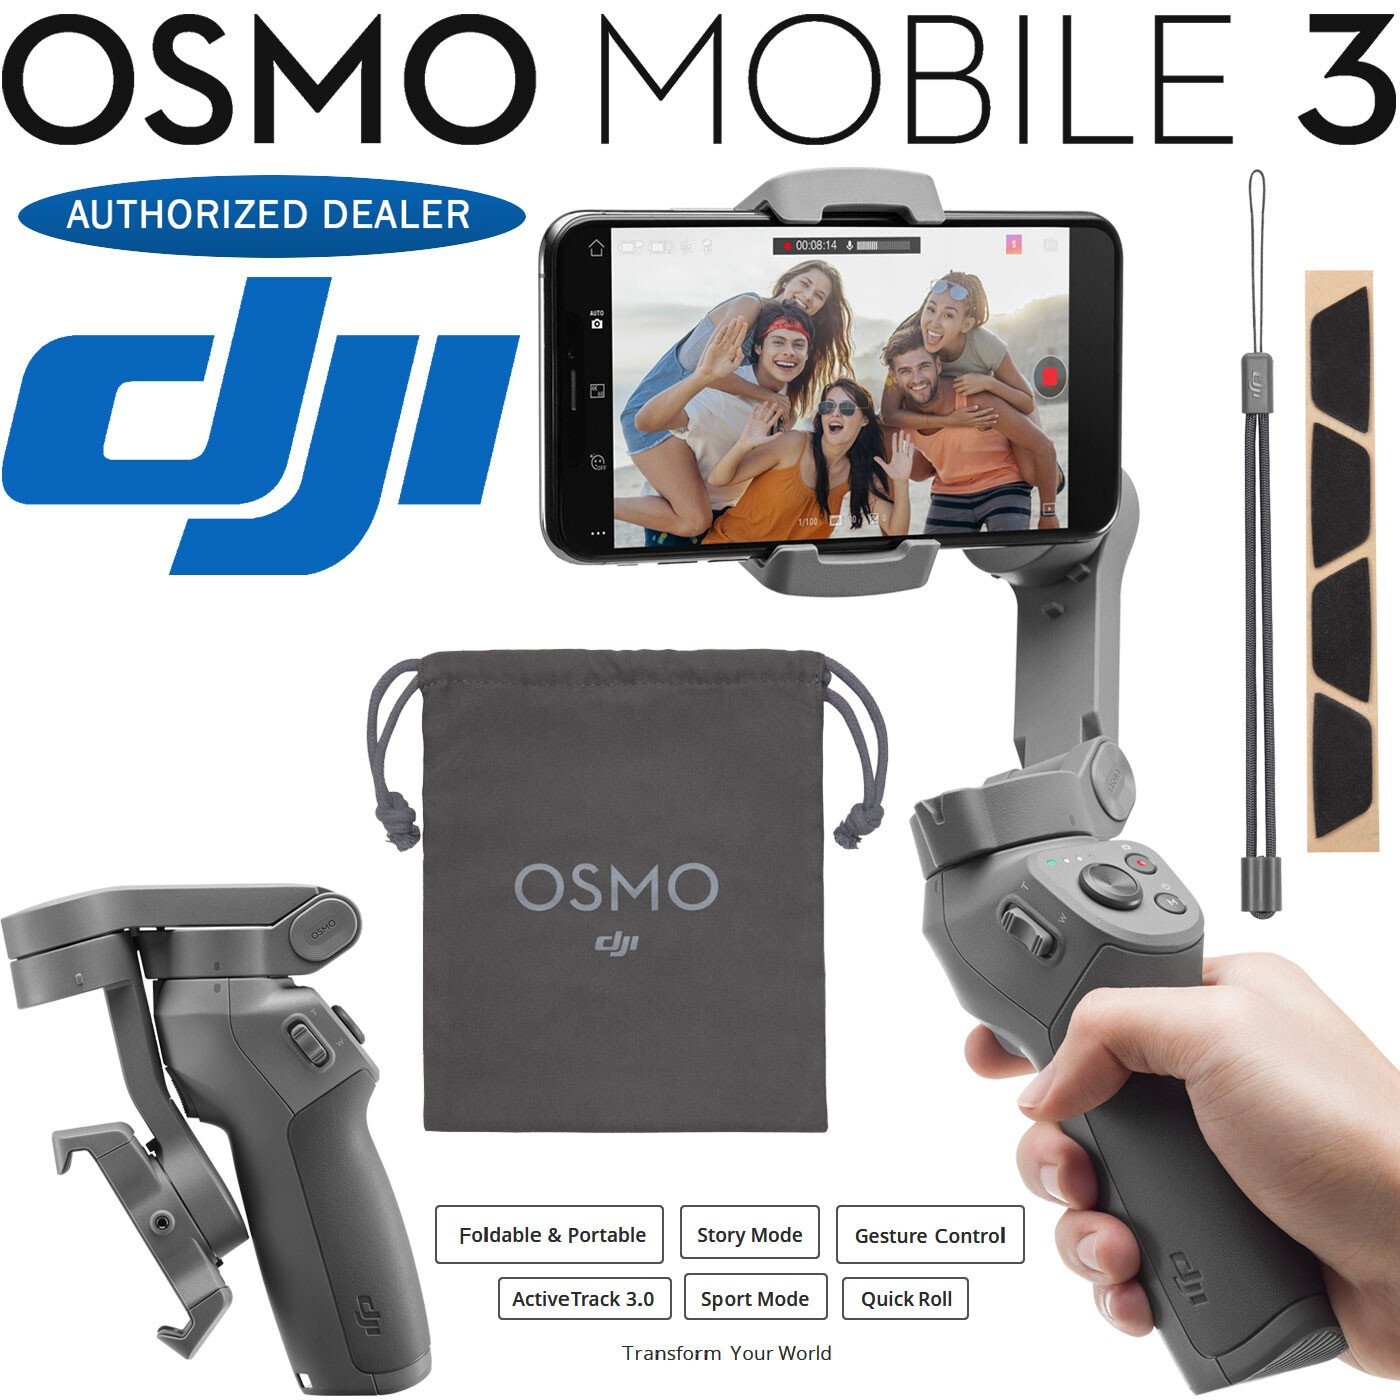 DJI Osmo Mobile 3 Gimbal + 64GB SanDisk Memory + Audio-Technica BT Headphones